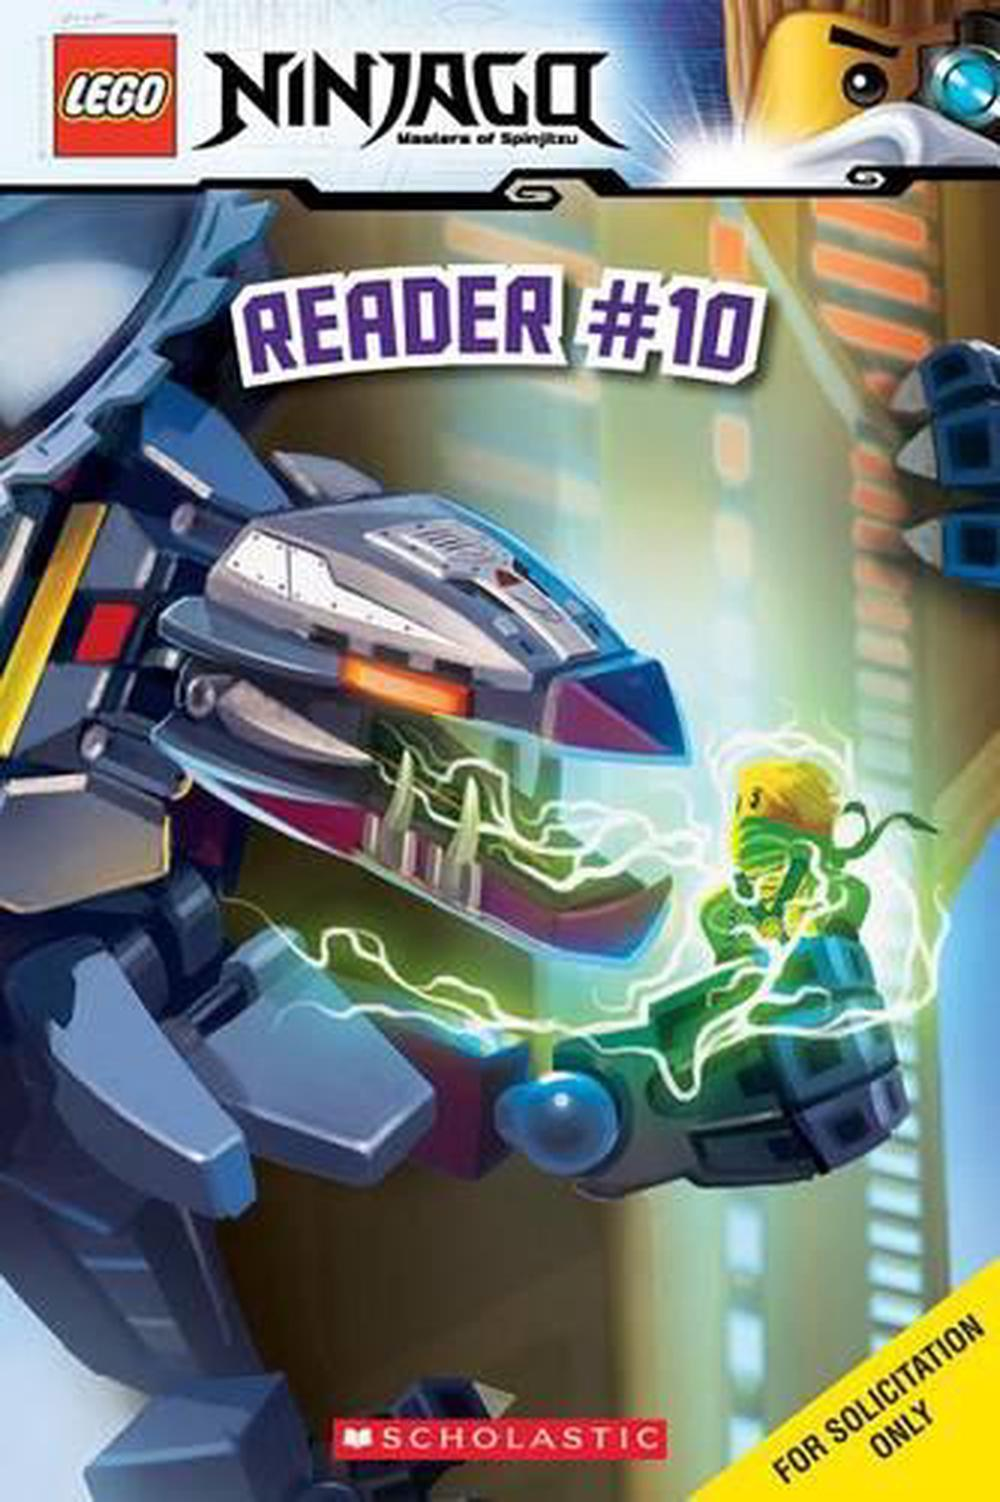 Details about The Titanium Ninja (Lego Ninjago: Reader) by Tracey West  (English) Paperback Boo